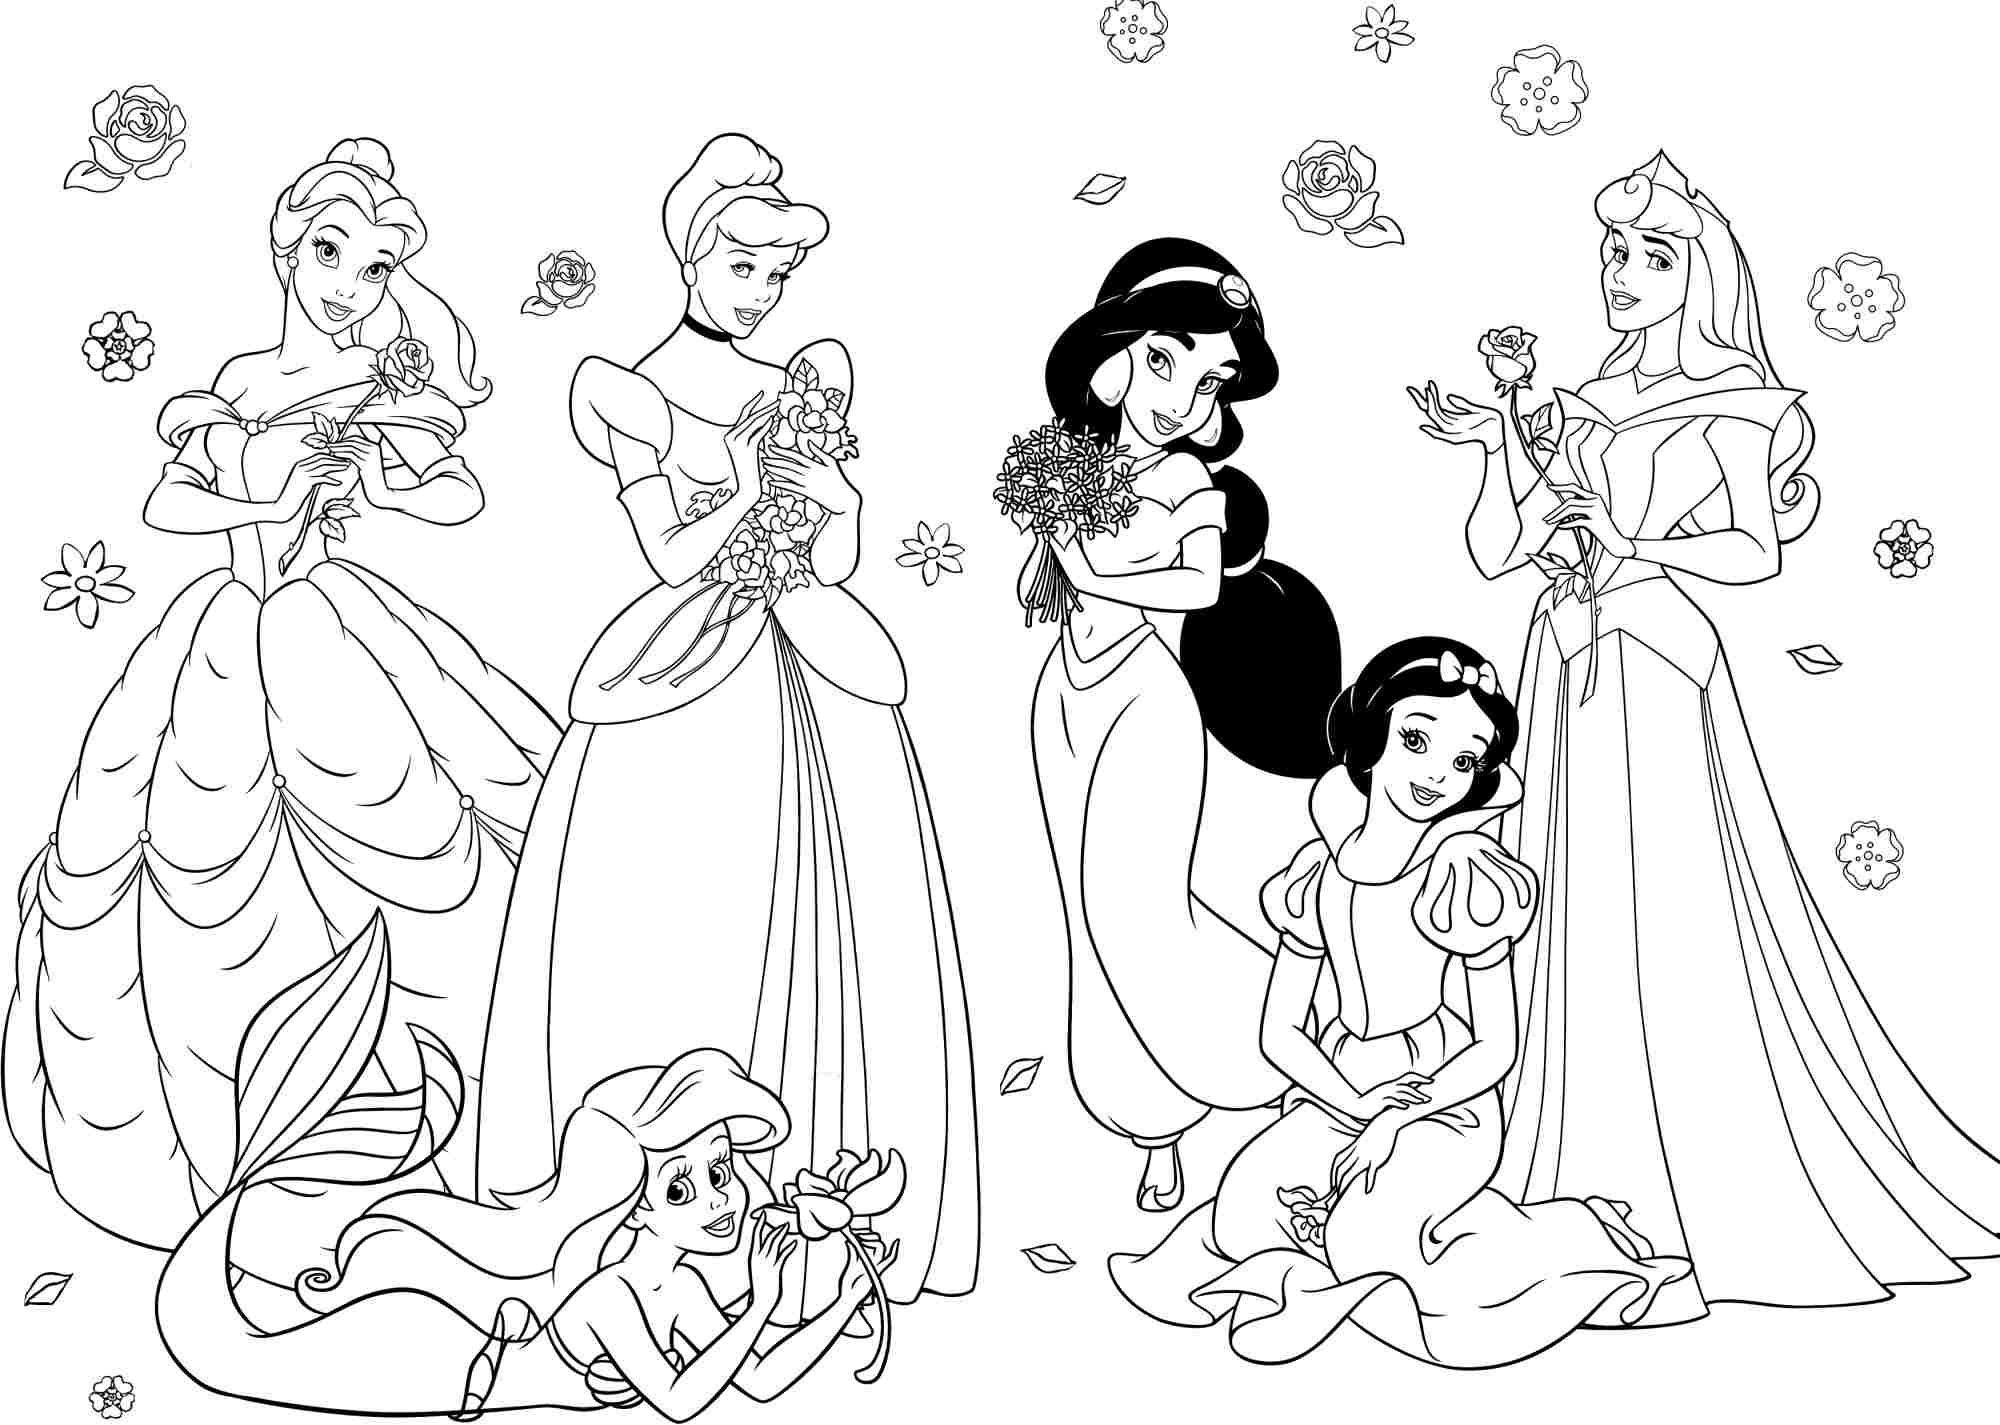 Disney princess coloring pages and activities